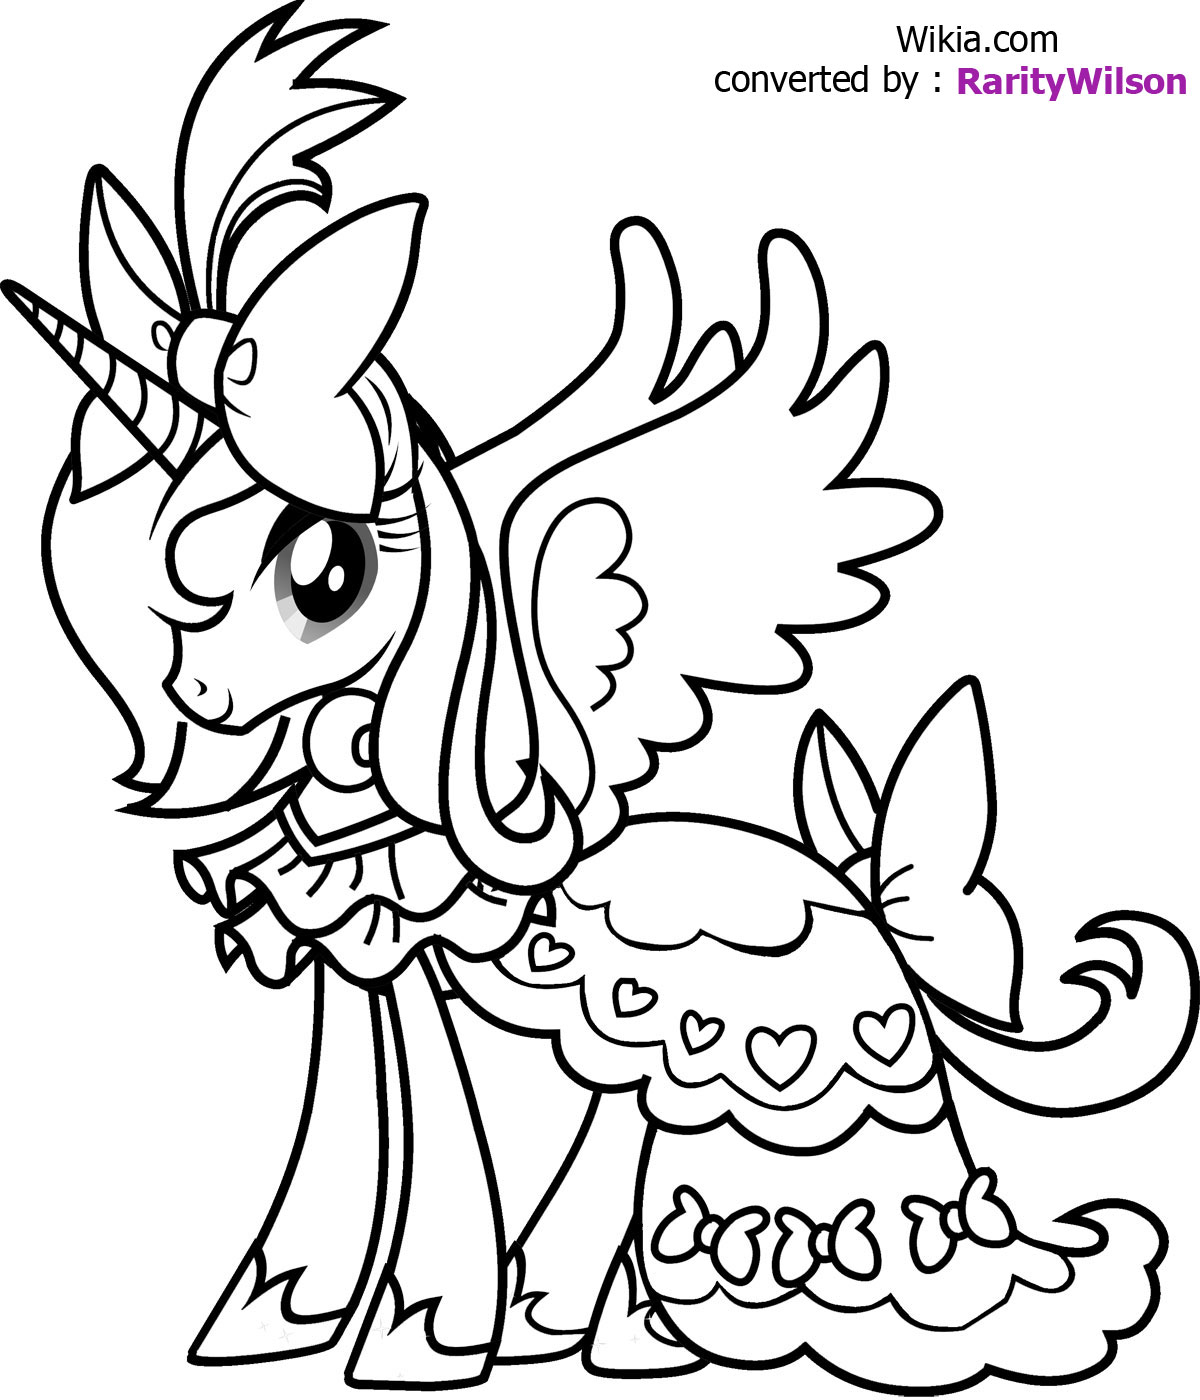 Mlp coloring pages dj pon 3 - My Little Pony Coloring Pages Coloring Kids